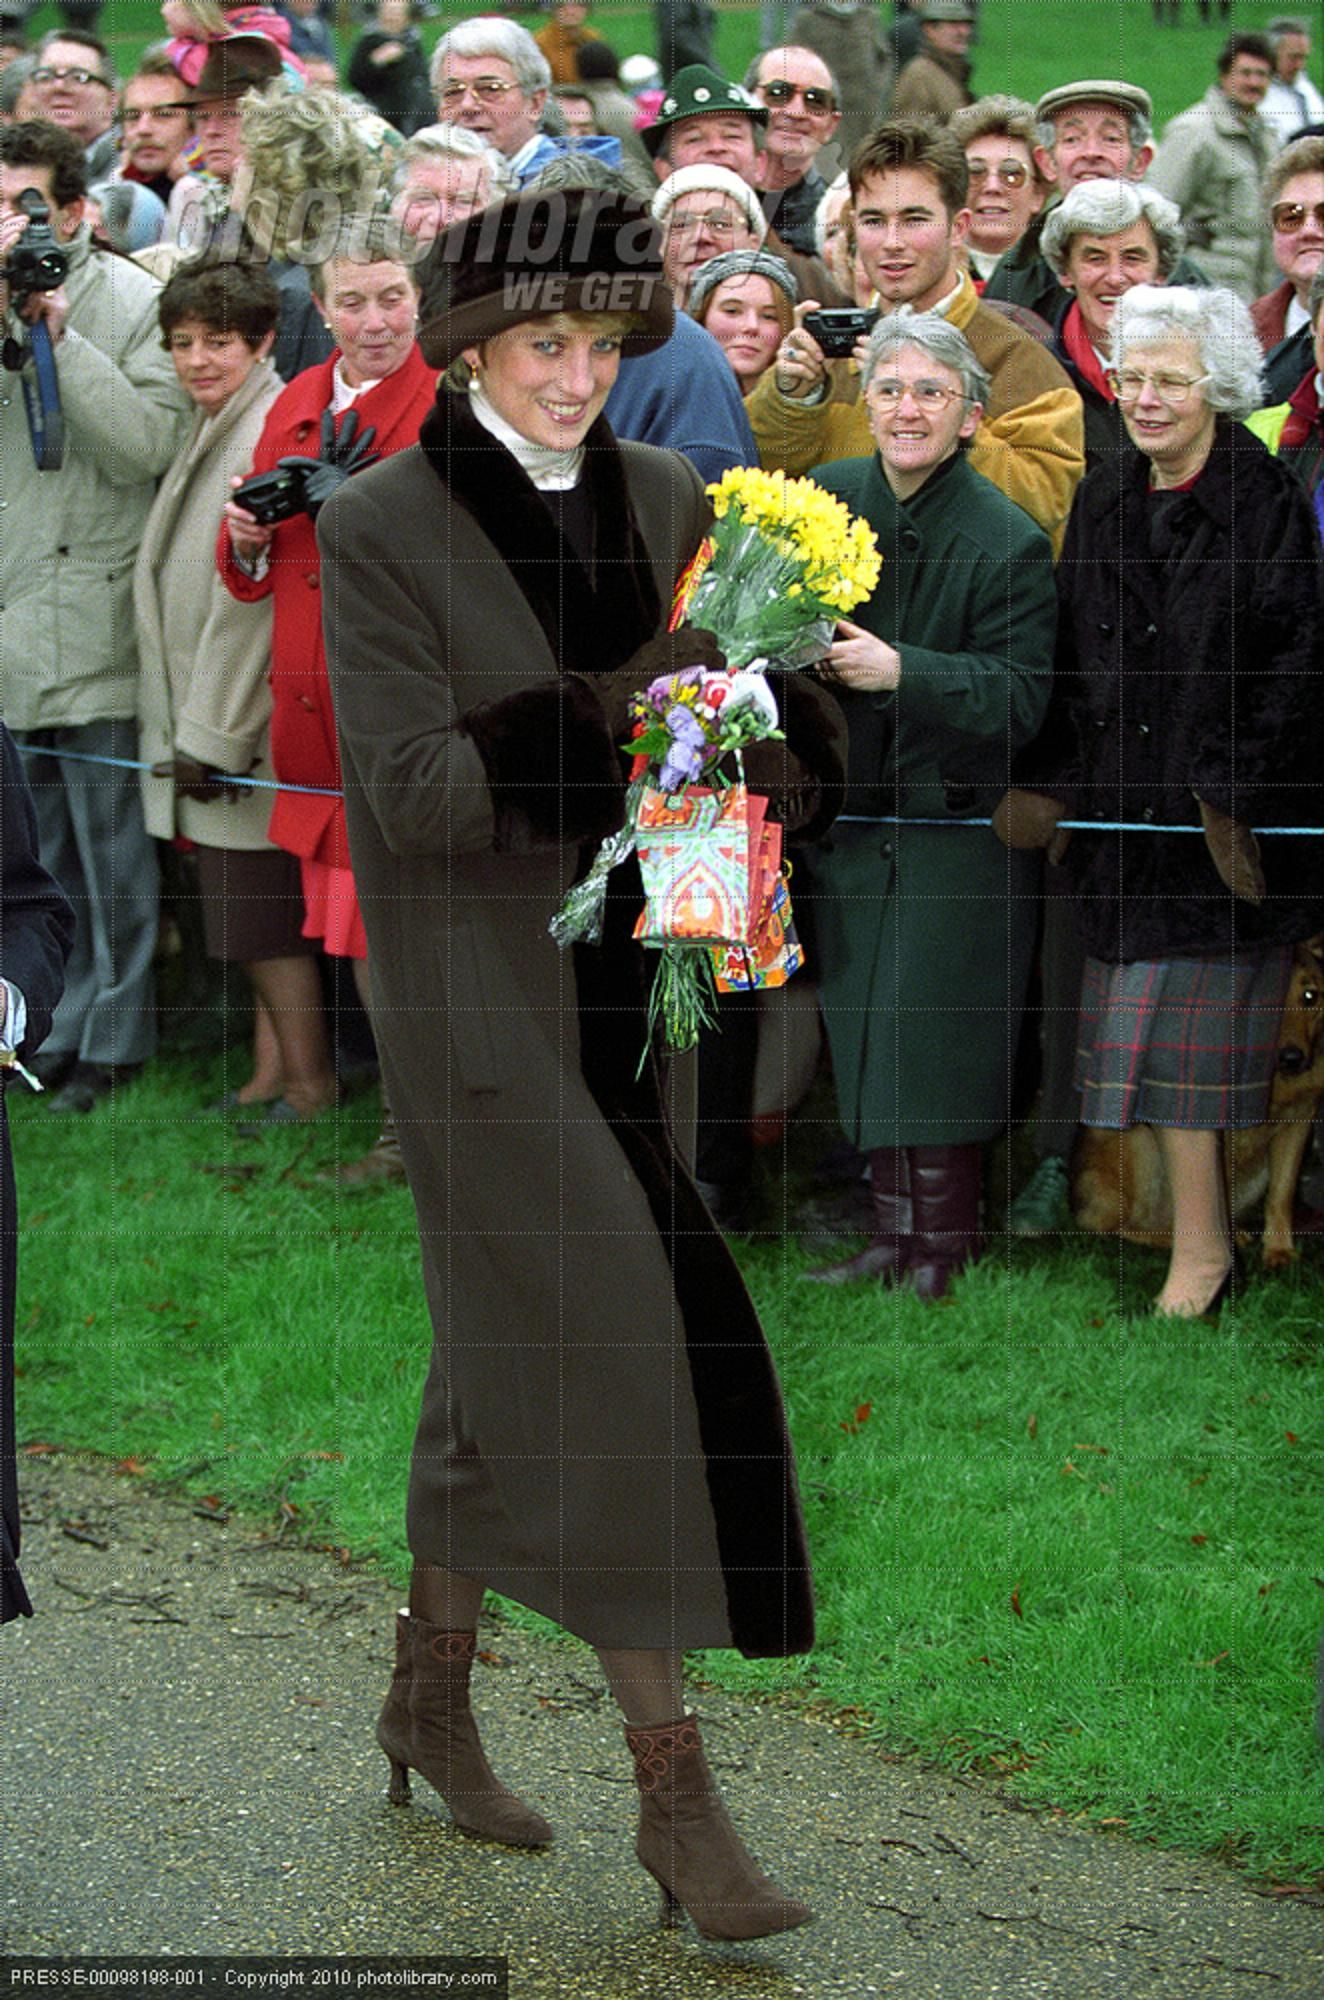 december 25 1994 princess diana s last christmas service with the royal family at sandringham princess diana fashion princess diana diana princess diana fashion princess diana